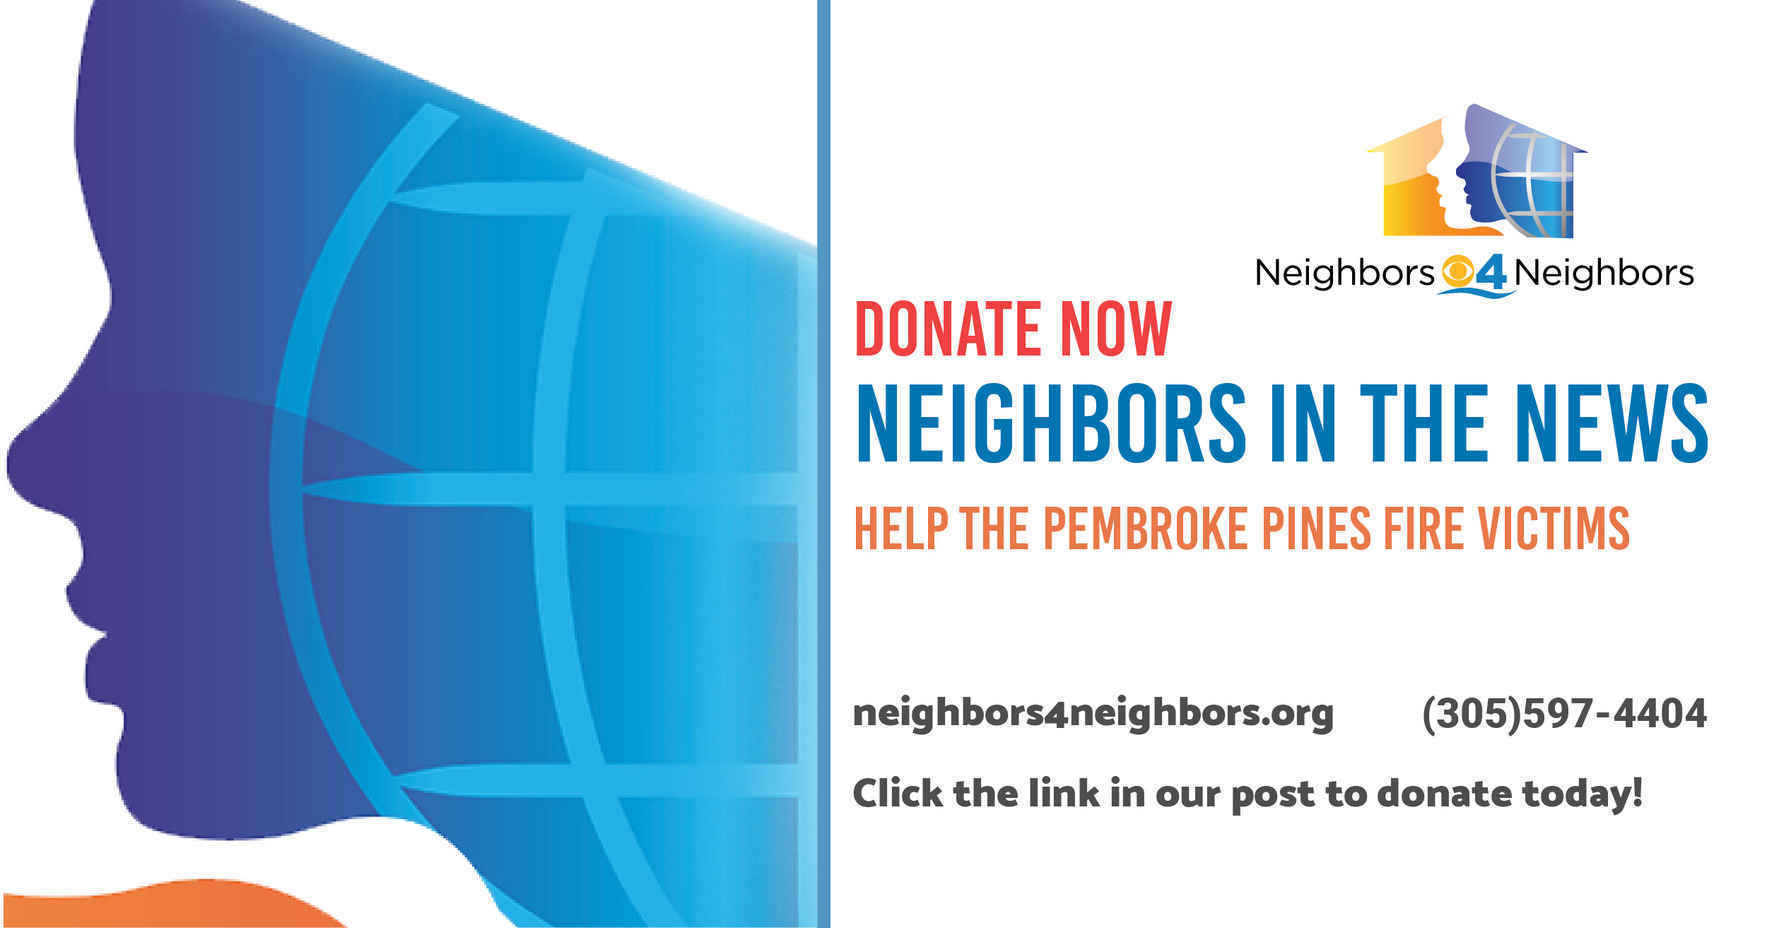 Donate Today to Help Pembroke Pines Fire Victims! image